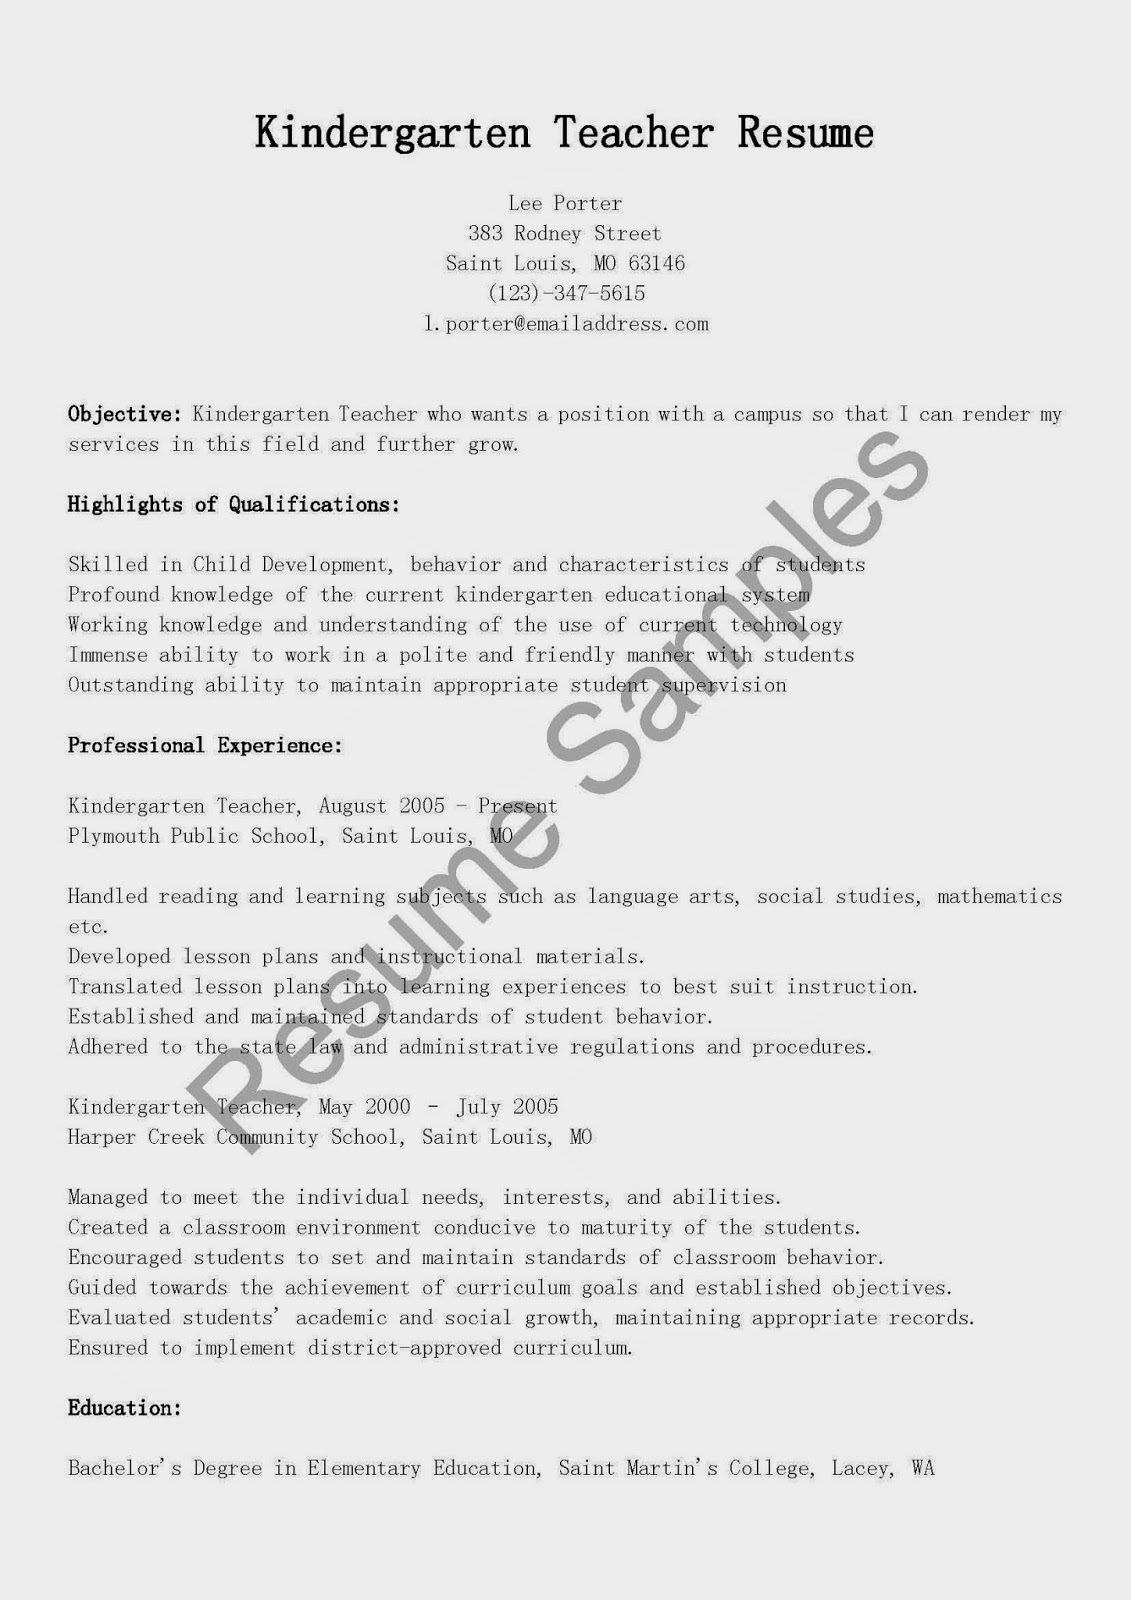 Essays On A Farewell To Arms Help Desk Sample Resume Tulane Essay